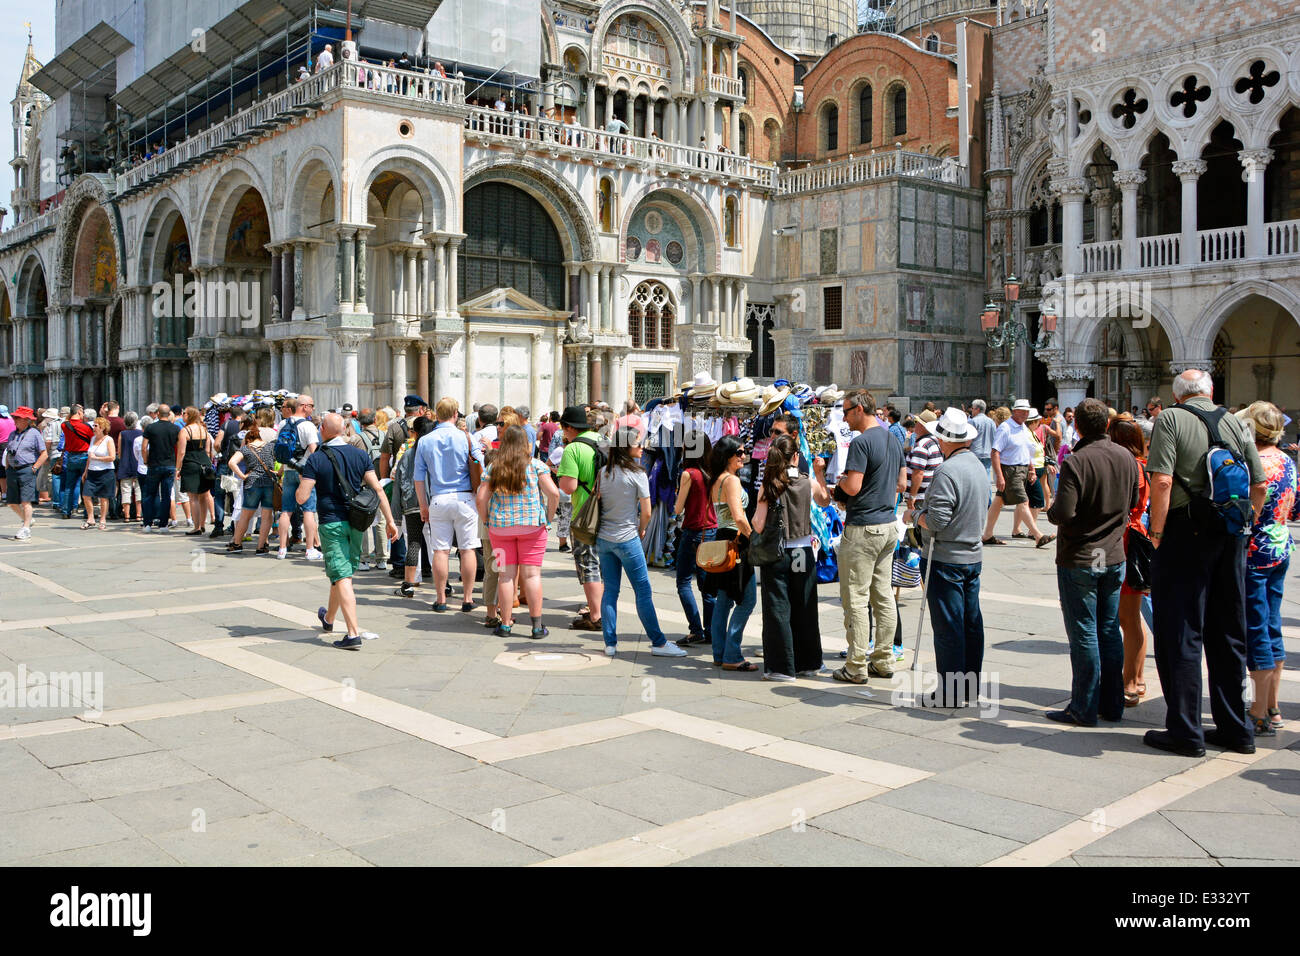 Long queue of casually dressed summer tourists people queuing & waiting outside Italian Doges Palace towards historical Stock Photo